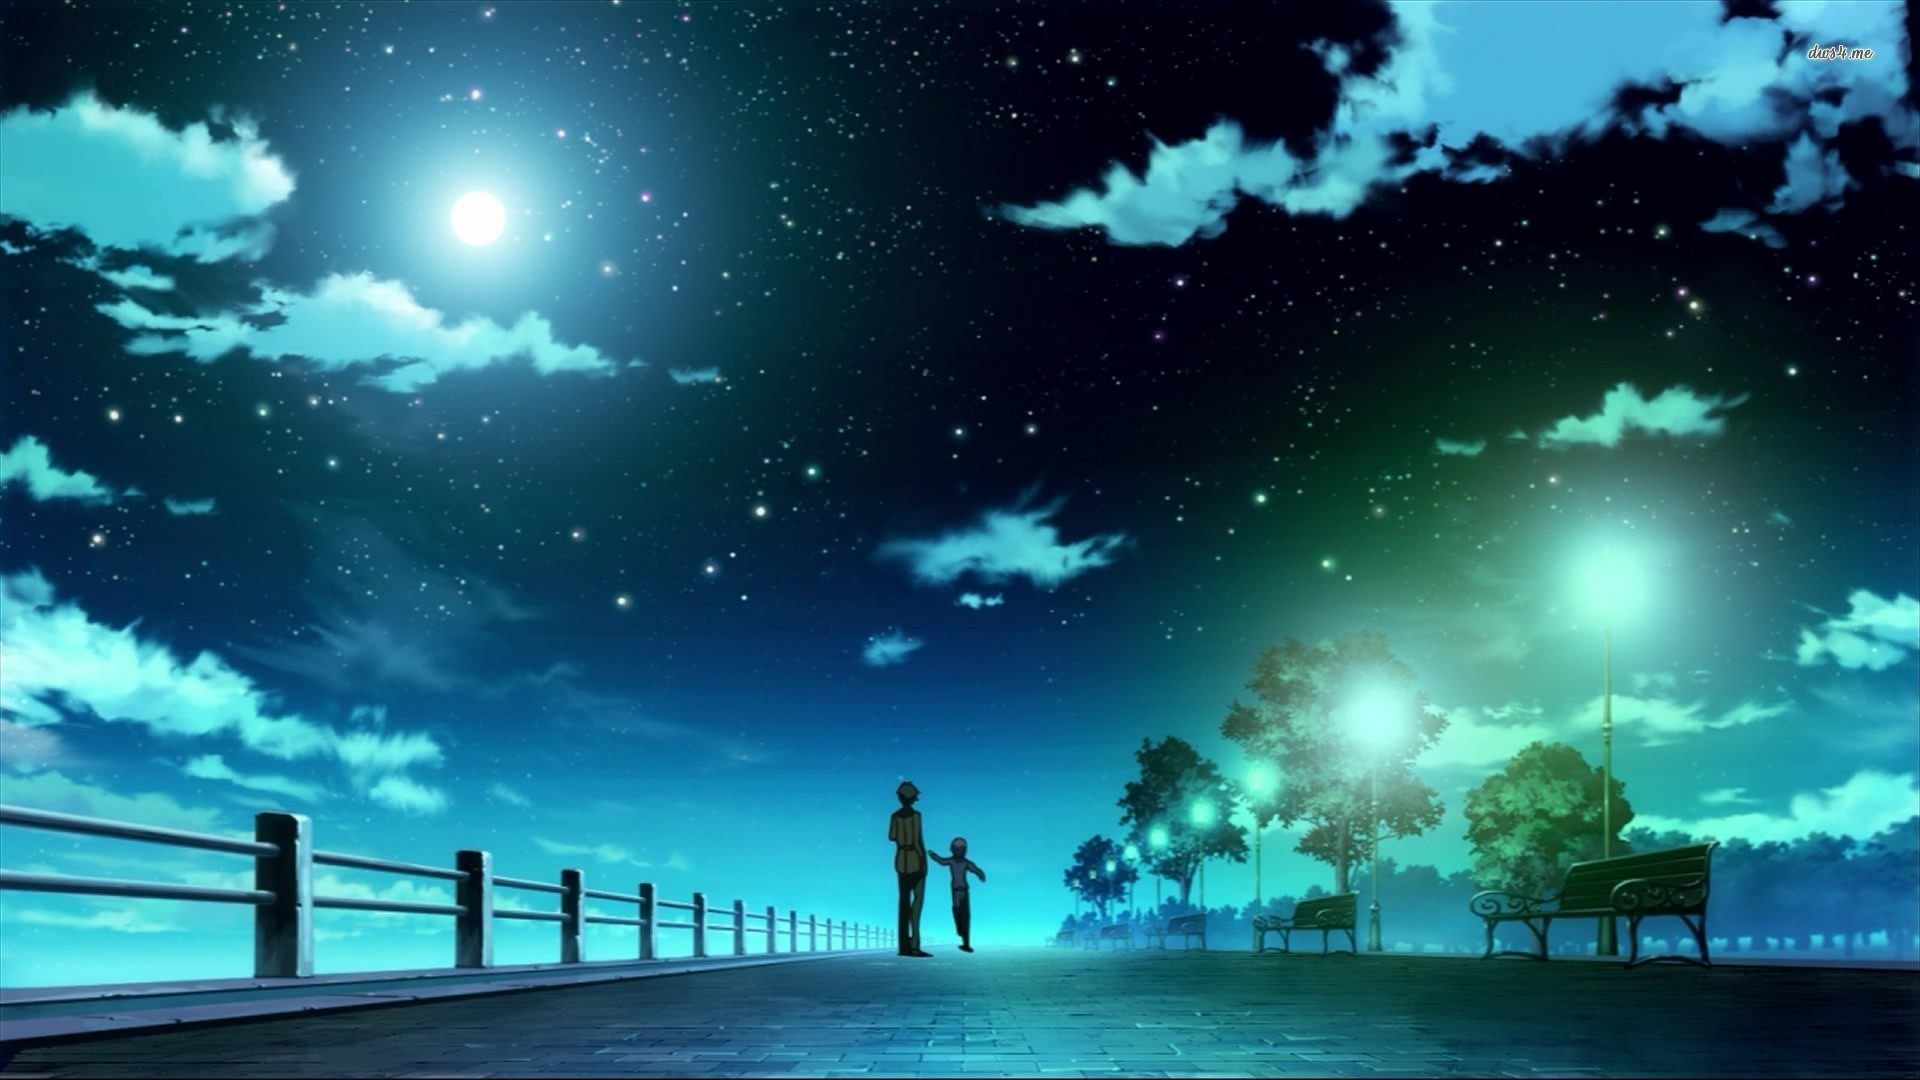 60 cool anime backgrounds download free cool full hd - Download anime wallpaper hd for android ...